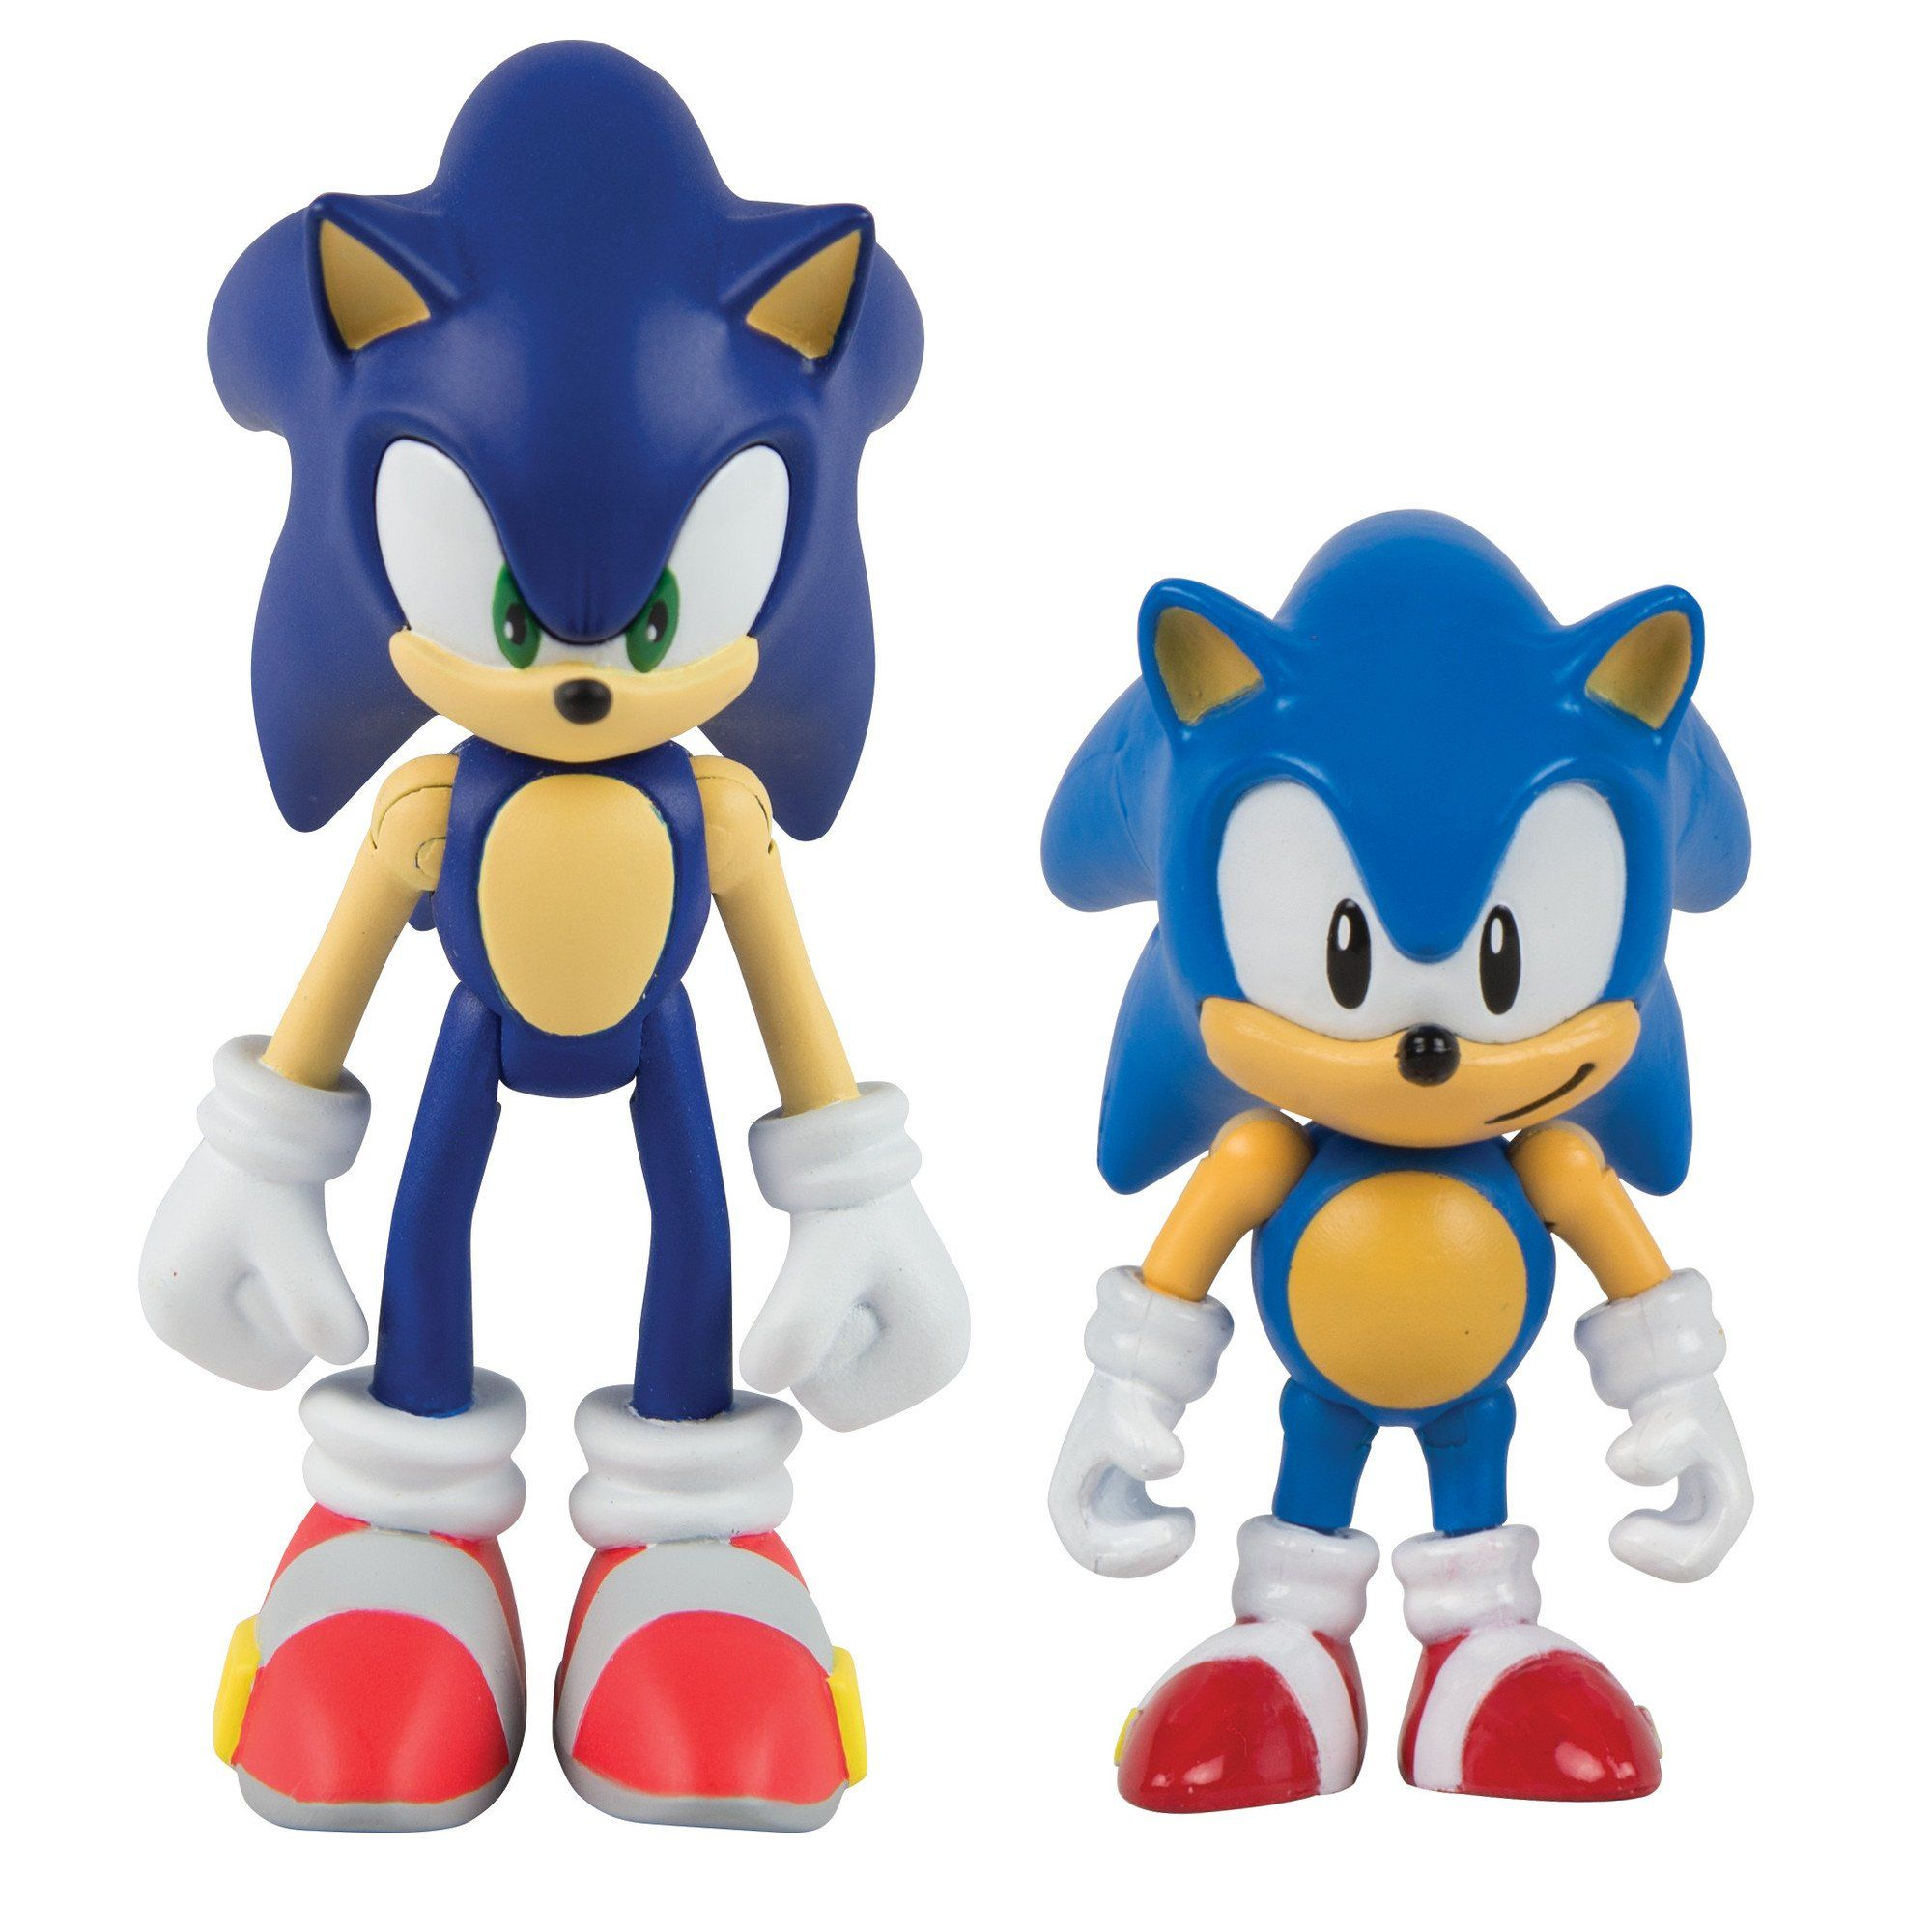 Tomy Sonic Collector Series 2 Figure Pack With Comic Classic Sonic Modern Sonic Set Includes Two Sonic Figures Clas Classic Sonic Sonic The Hedgehog Sonic